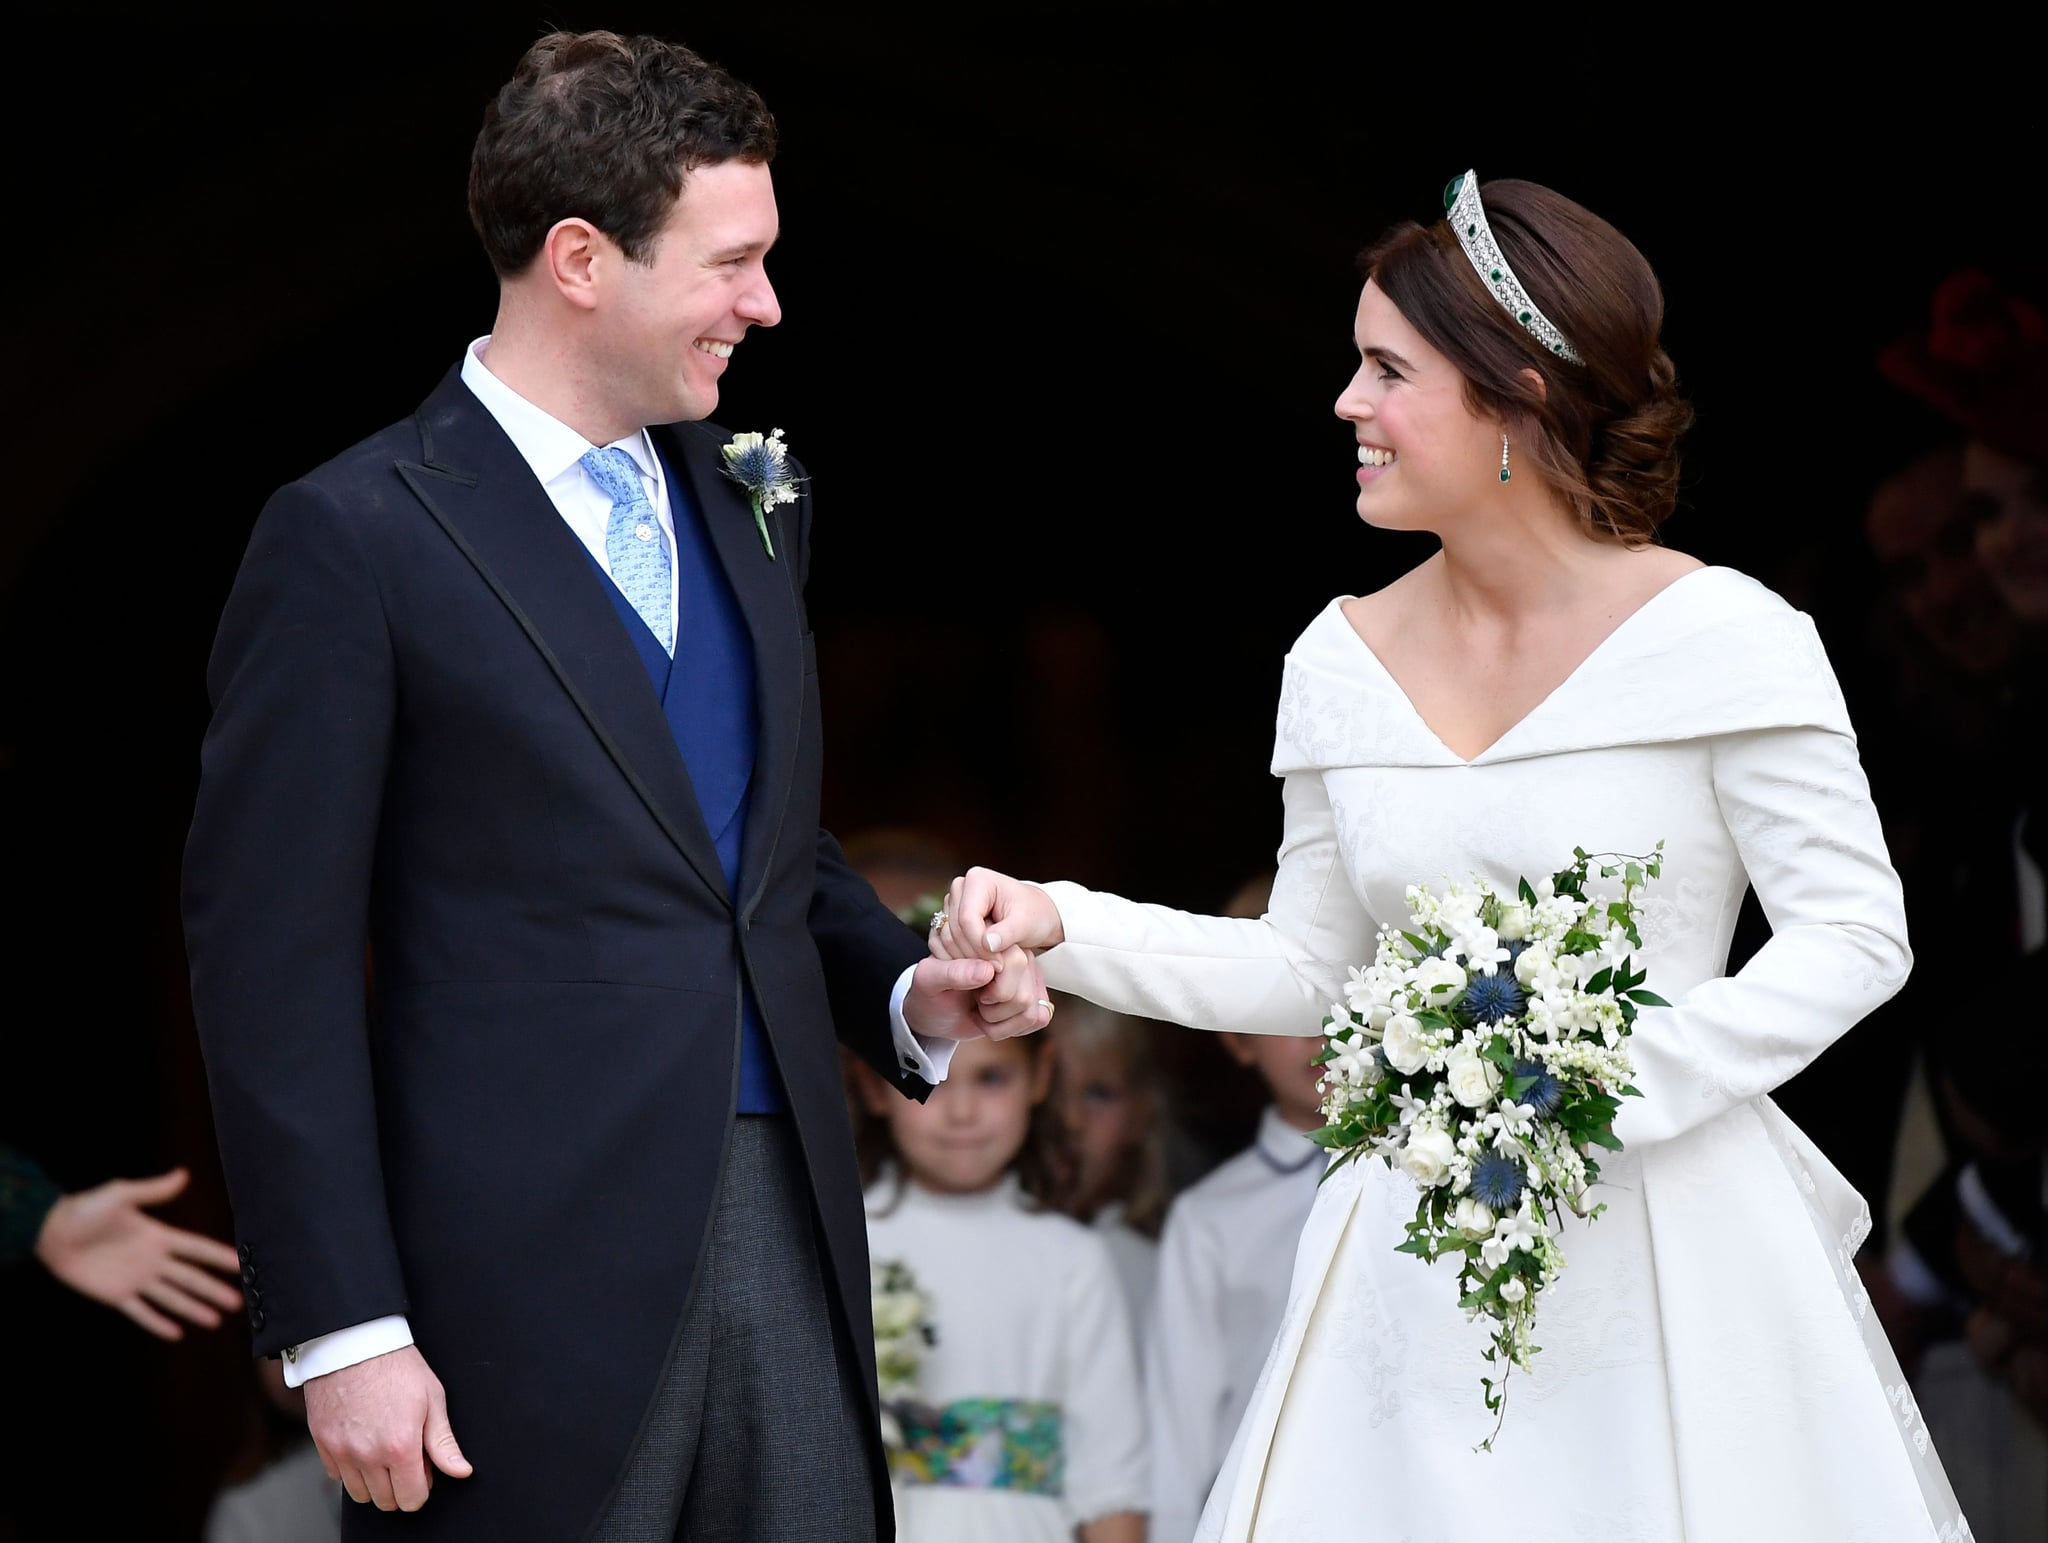 Britain's Princess Eugenie of York (R) and her husband Jack Brooksbank emerge from the West Door of St George's Chapel, Windsor Castle, in Windsor, on October 12, 2018 after their wedding ceremony. (Photo by TOBY MELVILLE / POOL / AFP)        (Photo credit should read TOBY MELVILLE/AFP/Getty Images)